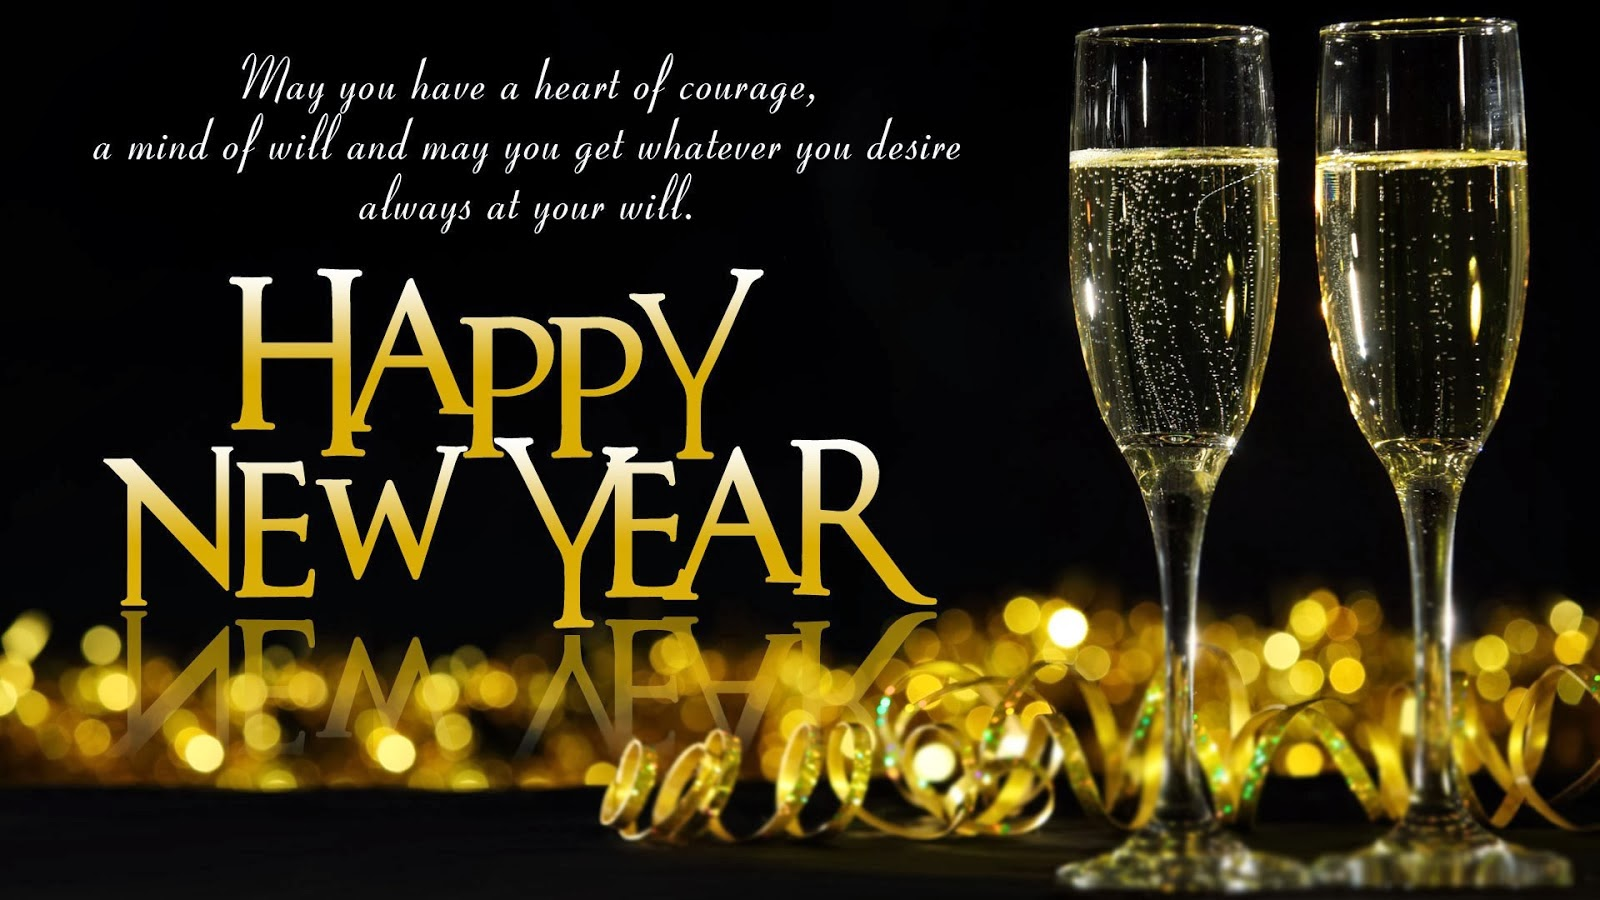 http://2.bp.blogspot.com/-i-CWS5gmPiM/UptODH_7qRI/AAAAAAAAAEs/tmPnscQjZds/s1600/happy-new-year-2013-wallpaper-xnys72.jpg